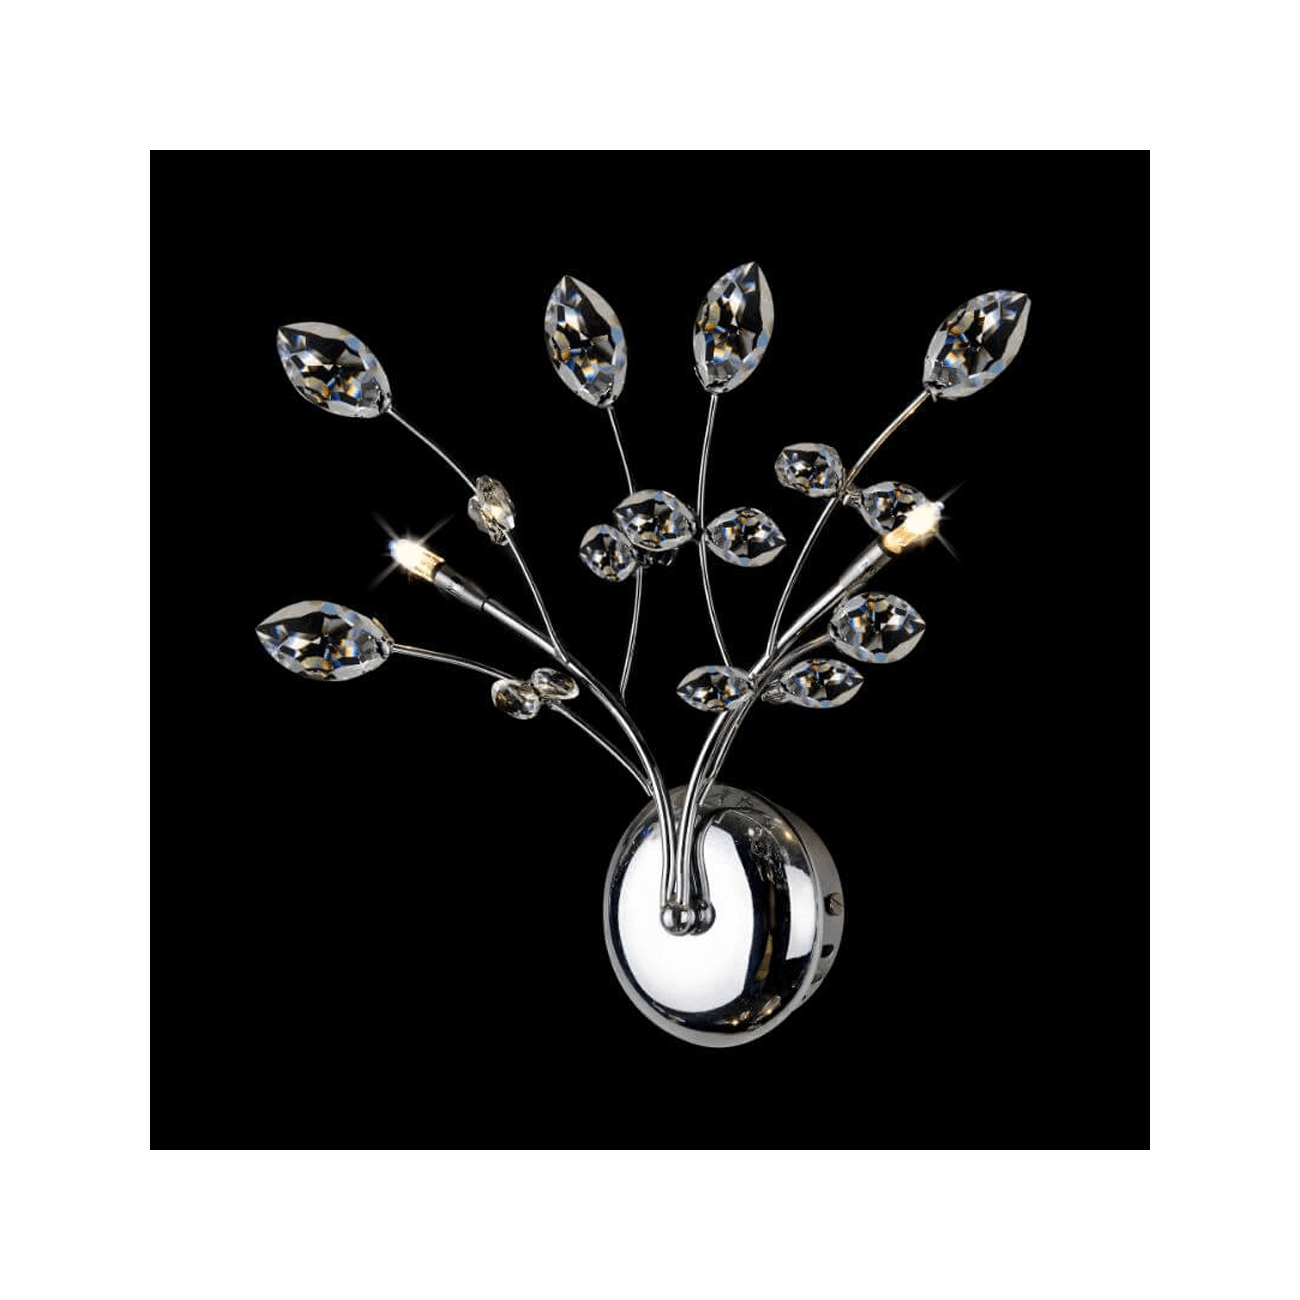 Applique Cristal Applique Cristal Chrome Design Floral